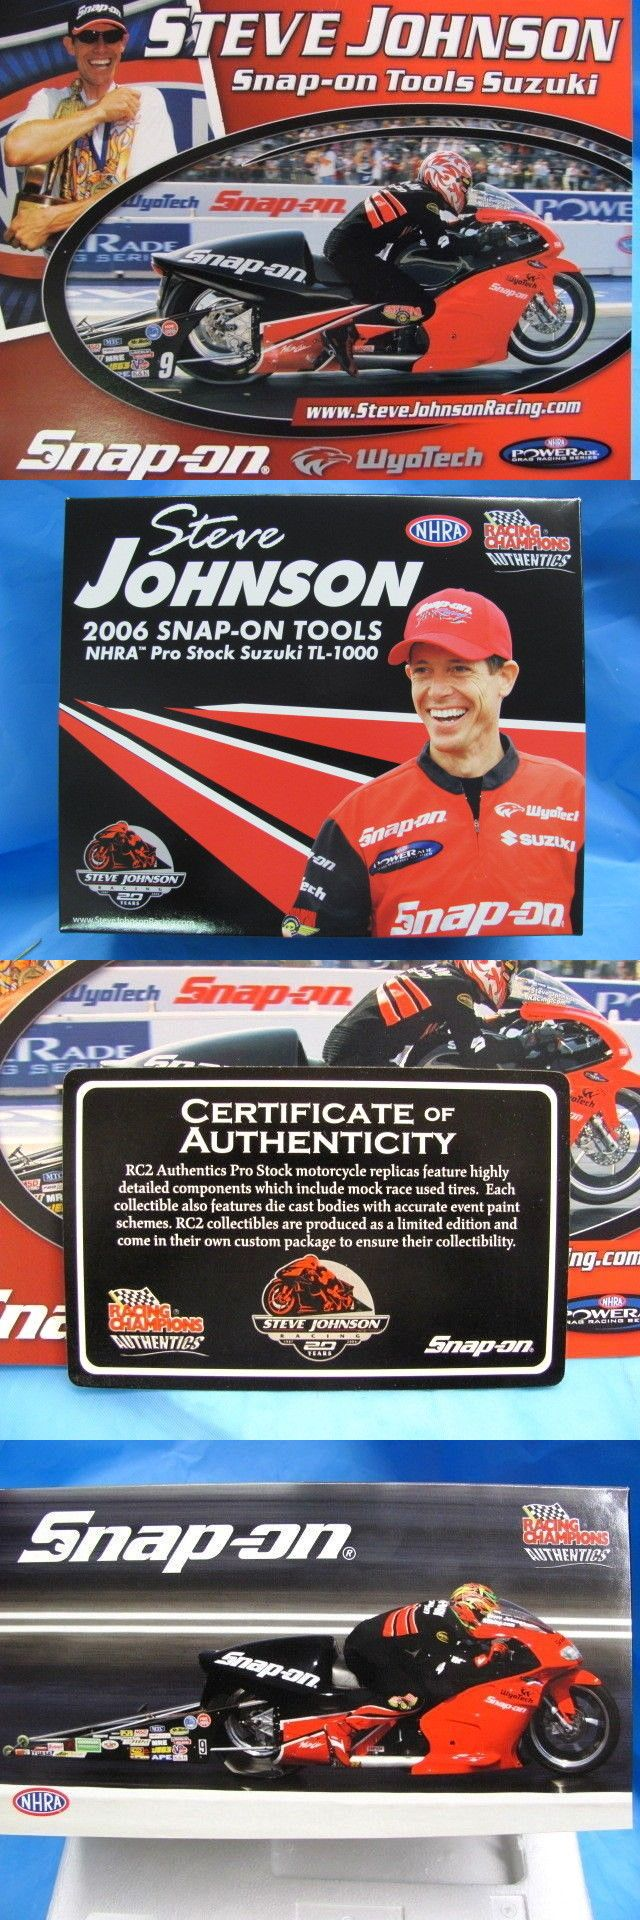 Contemporary Manufacture 45348: Steve Johnson Snap-On Nhra 2006 Die-Cast Pro Stock Suzuki Tl-1000 Nib Sealed -> BUY IT NOW ONLY: $55.99 on eBay!